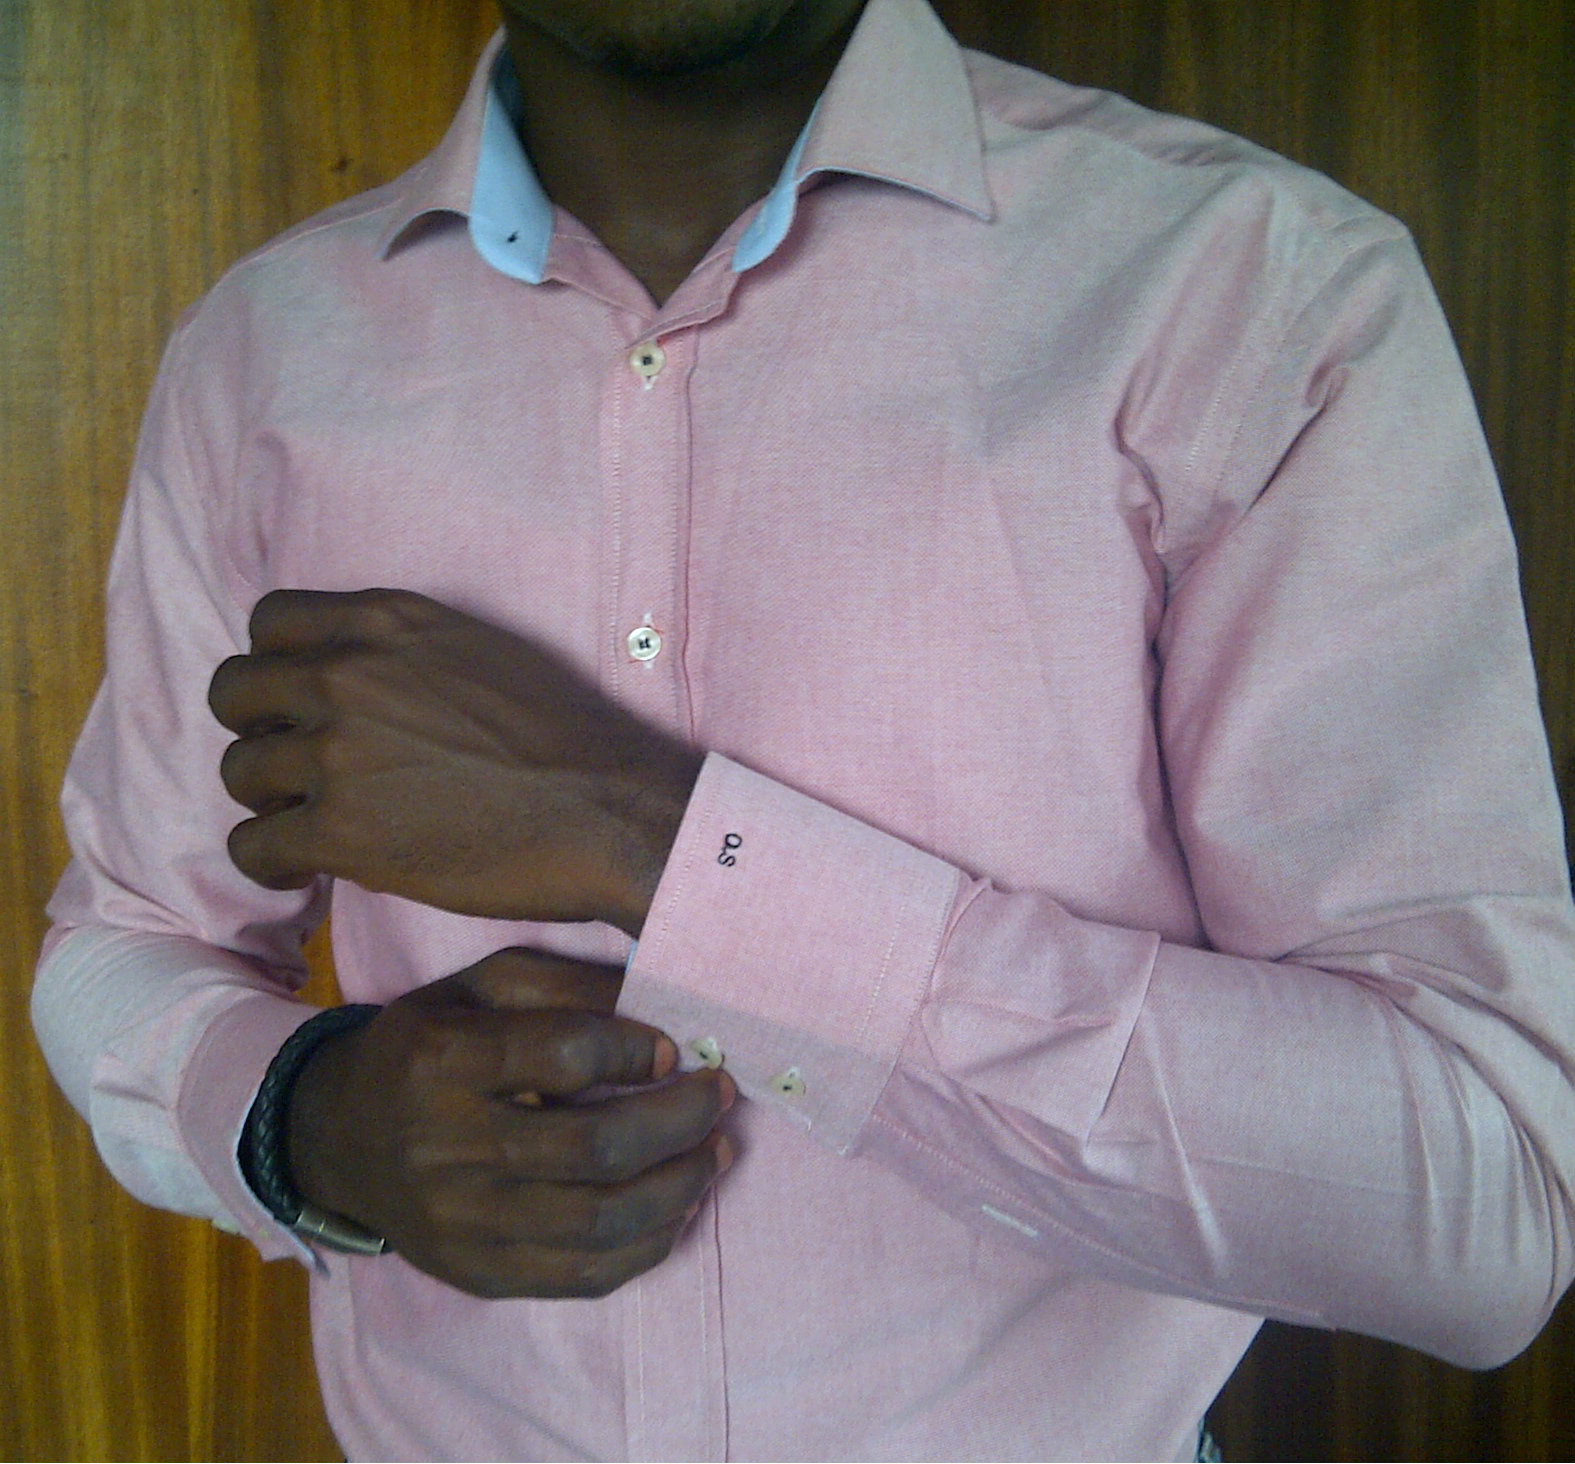 Tailor4less custom made shirt- Fit